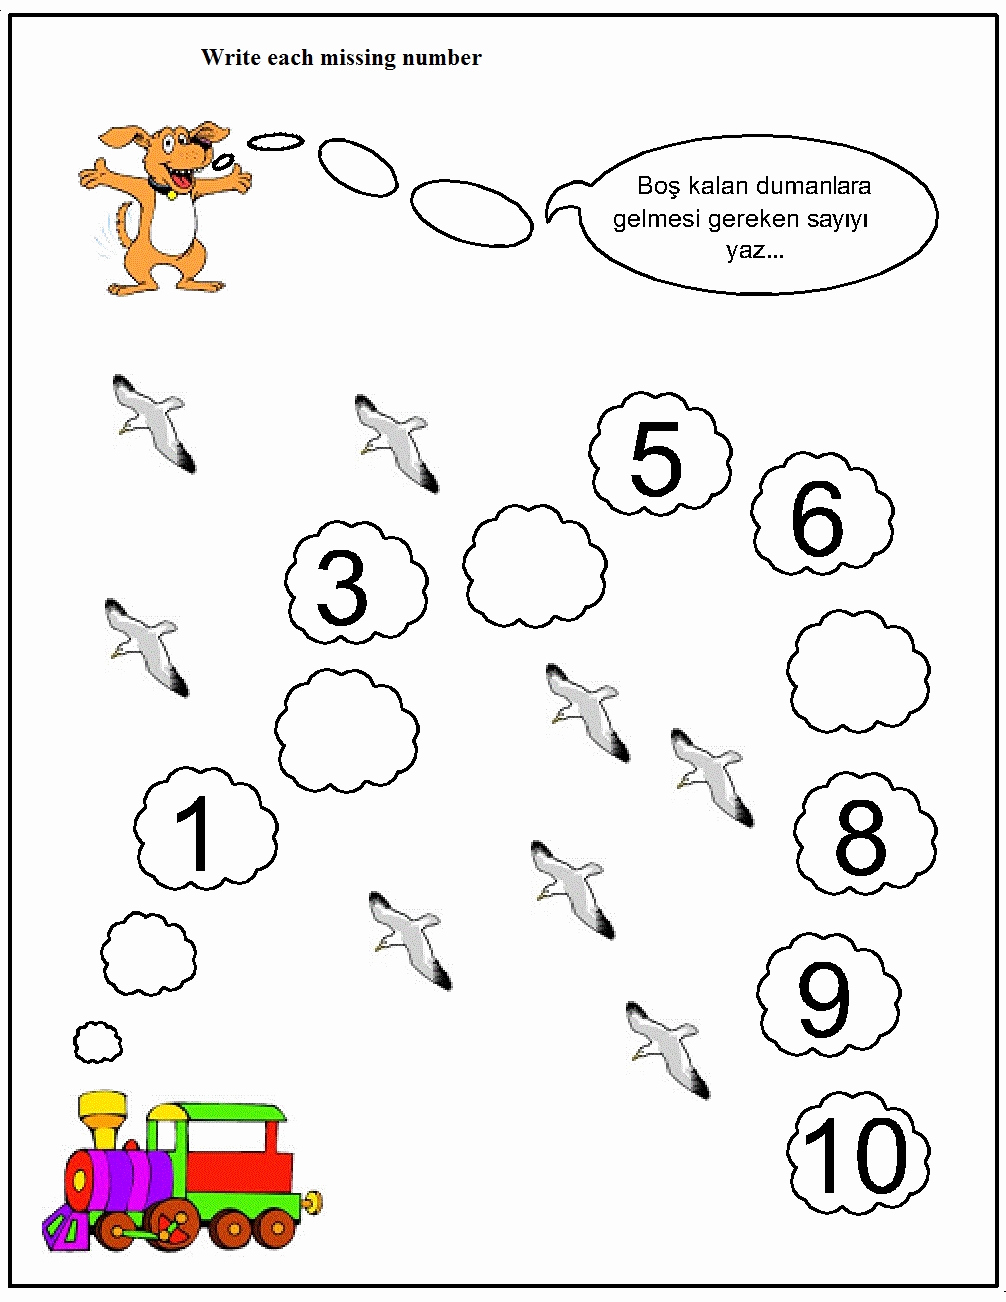 Missing Number Worksheets 1 10 Lovely Crafts Actvities and Worksheets for Preschool toddler and